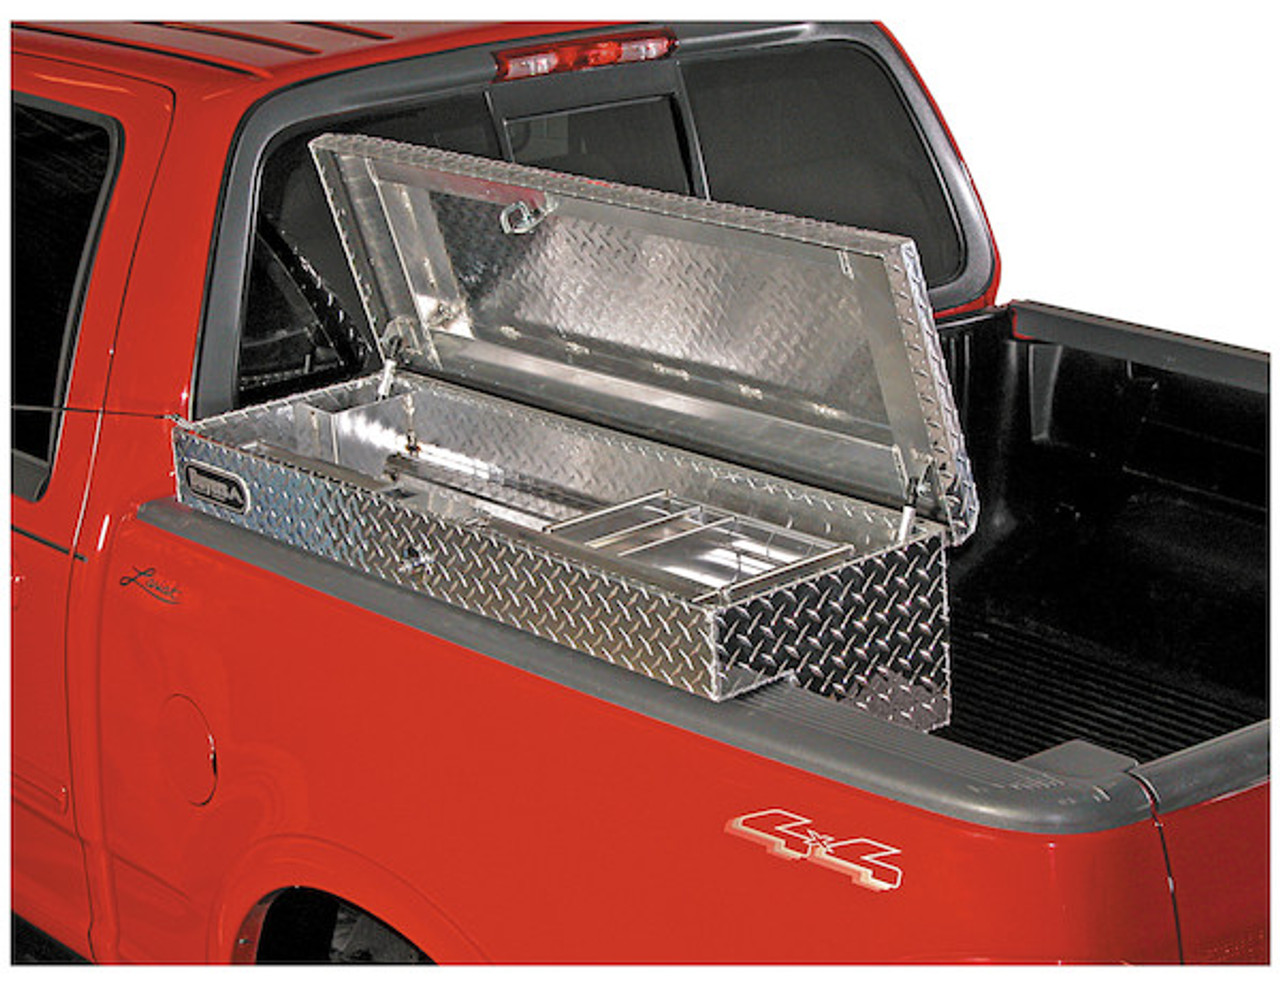 1711025 BUYERS PRODUCTS DIAMOND TREAD ALUMINUM LO-SIDER TRUCK TOOLBOX